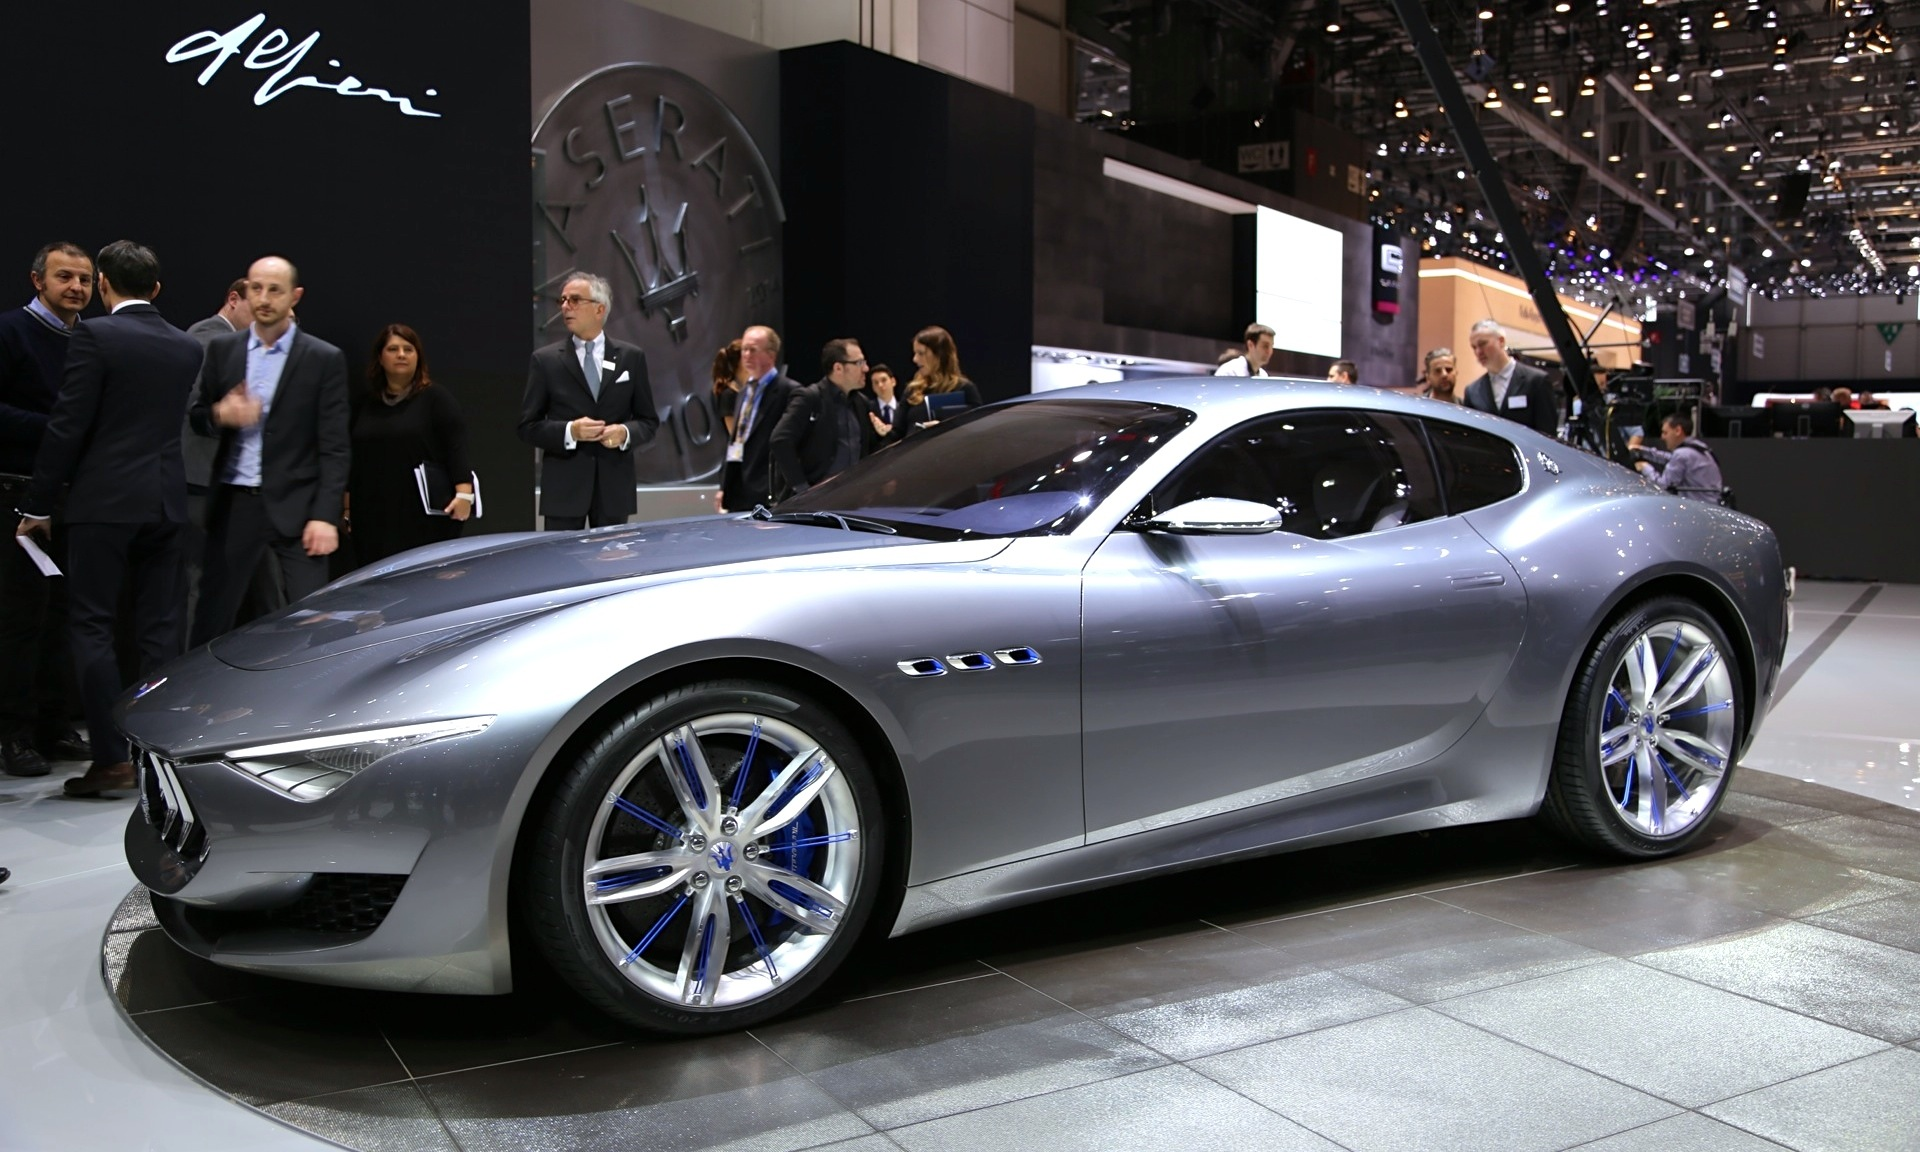 Marvelous Maserati To Launch Alfieri Sports Car, Kill GranTurismo Convertible By 2018